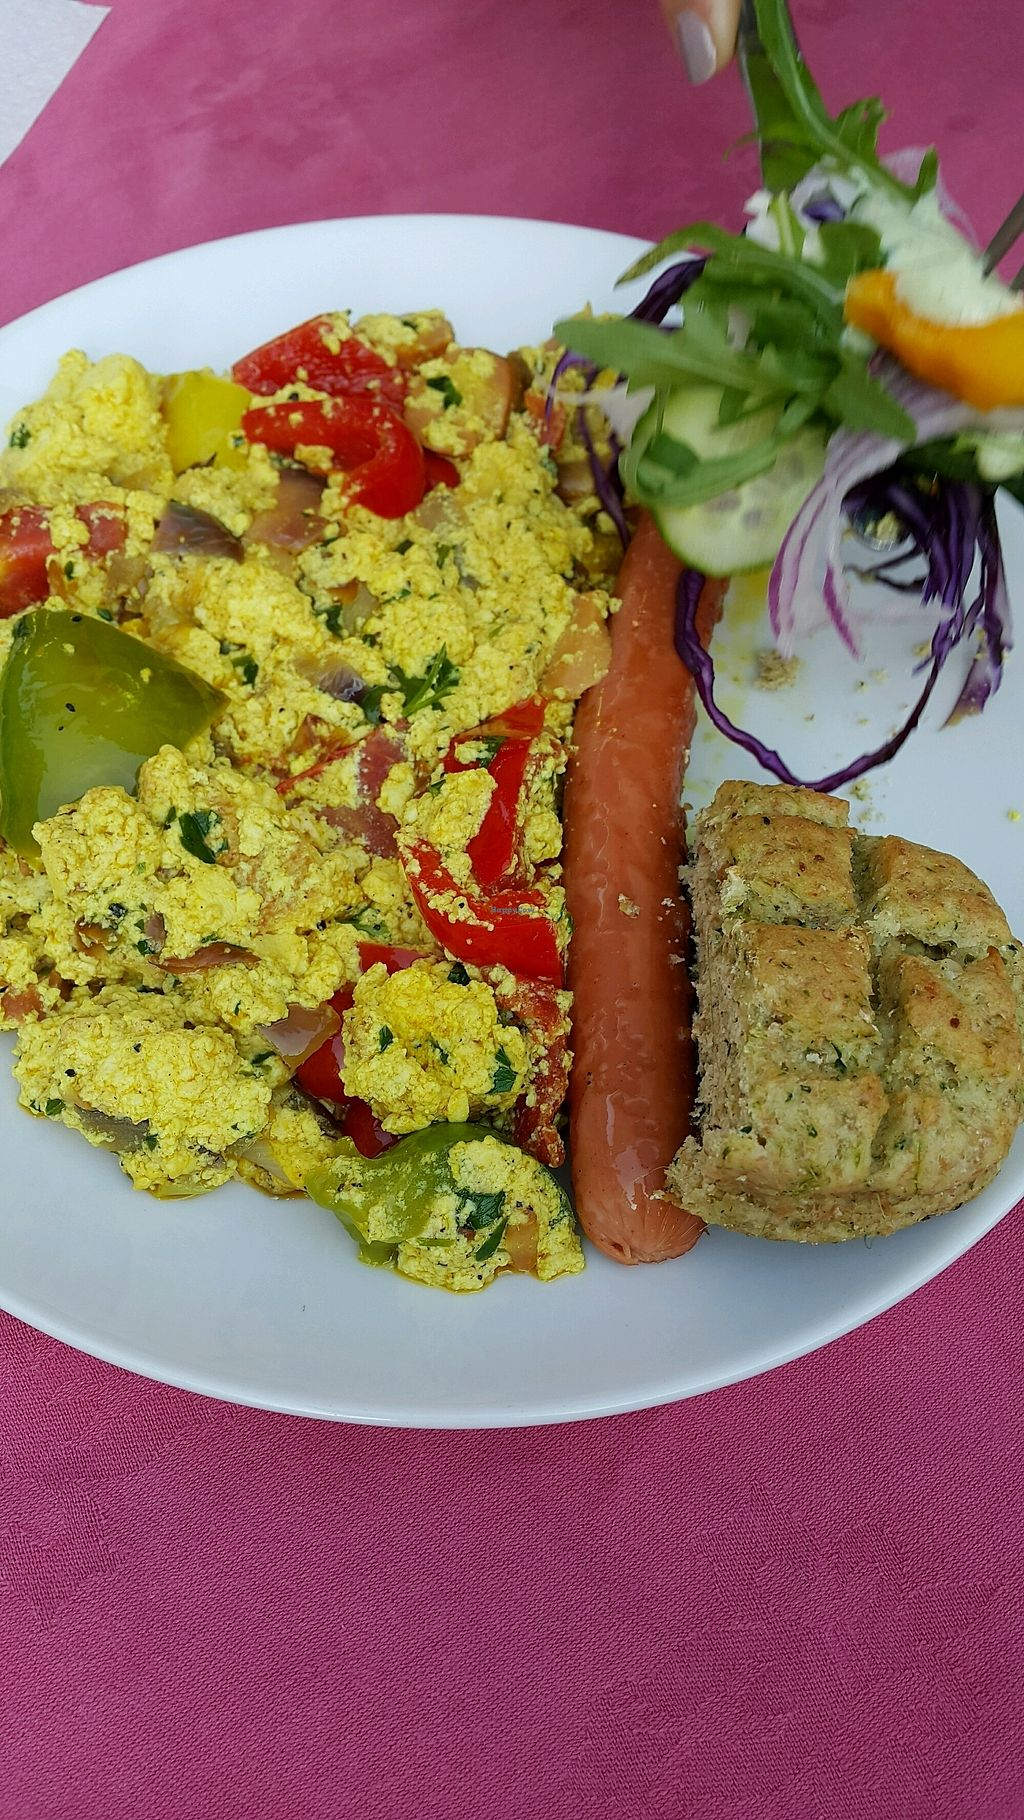 """Photo of Edeni Vegan  by <a href=""""/members/profile/RimaBarakat"""">RimaBarakat</a> <br/>Tofu and sausage breakfast  <br/> October 16, 2017  - <a href='/contact/abuse/image/5490/315978'>Report</a>"""